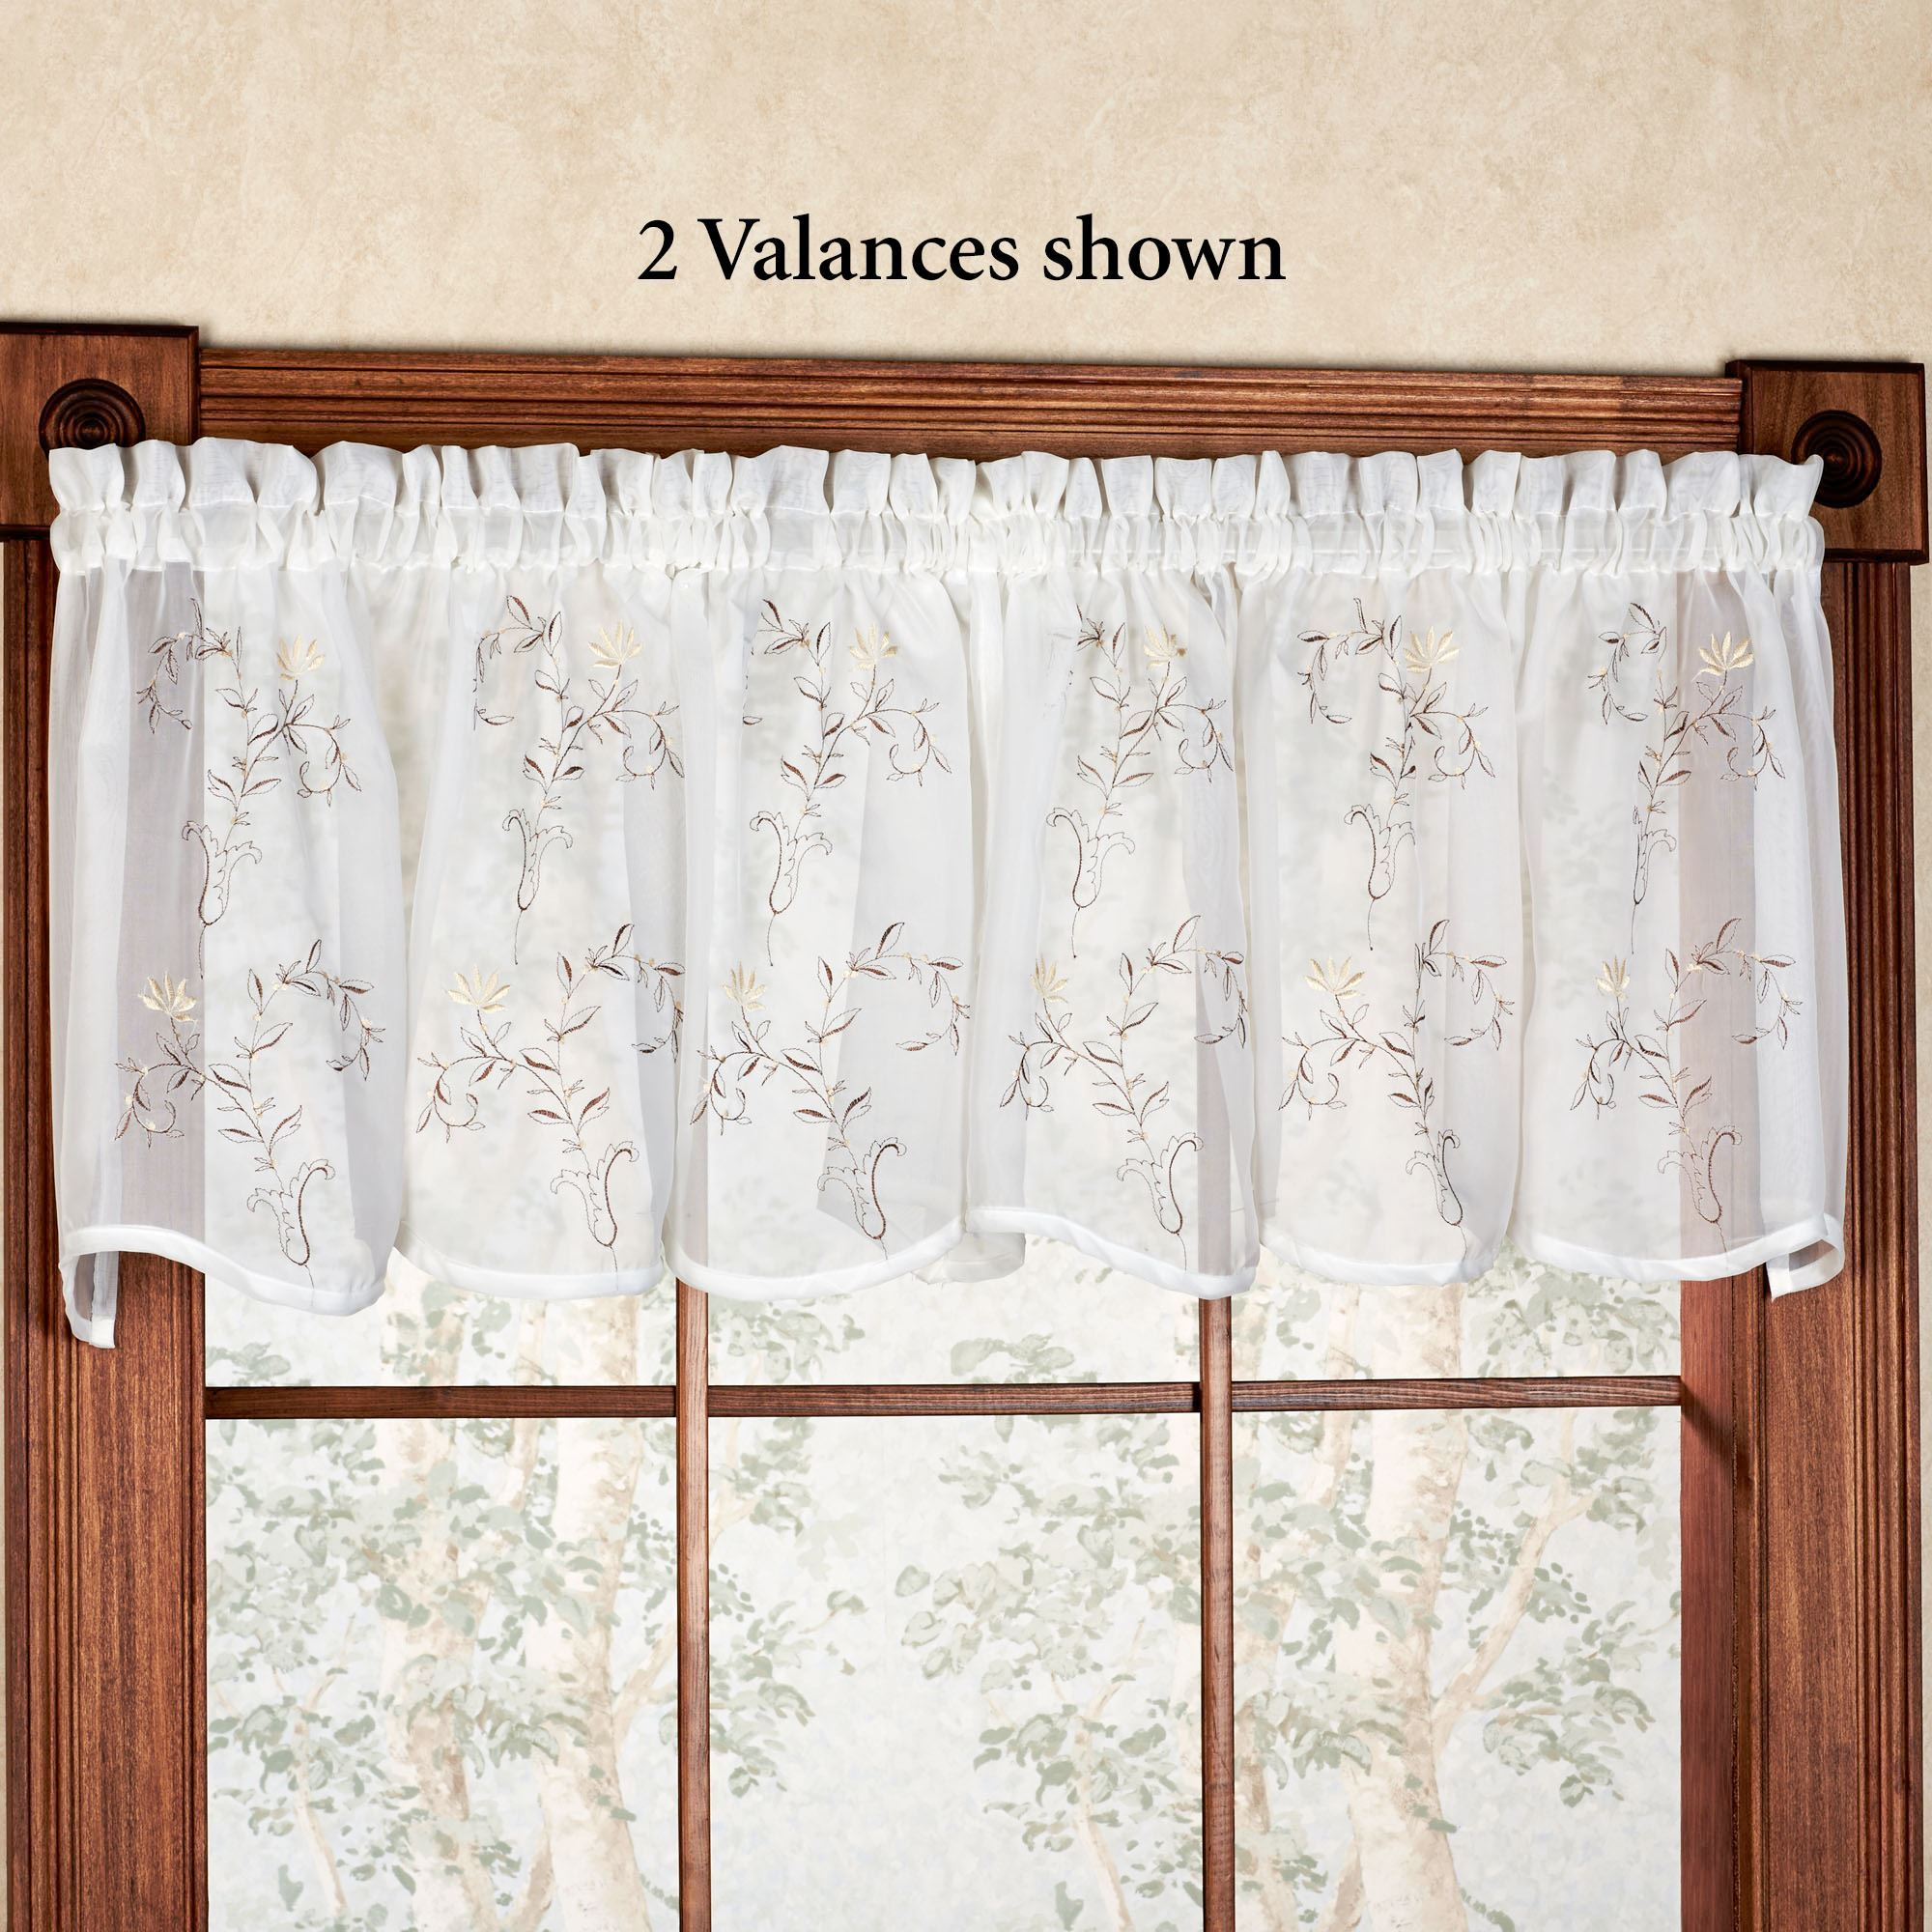 drapes curtains valance beige sheer cream ivory eyelet fabric itm pleat swag curtain pelmet